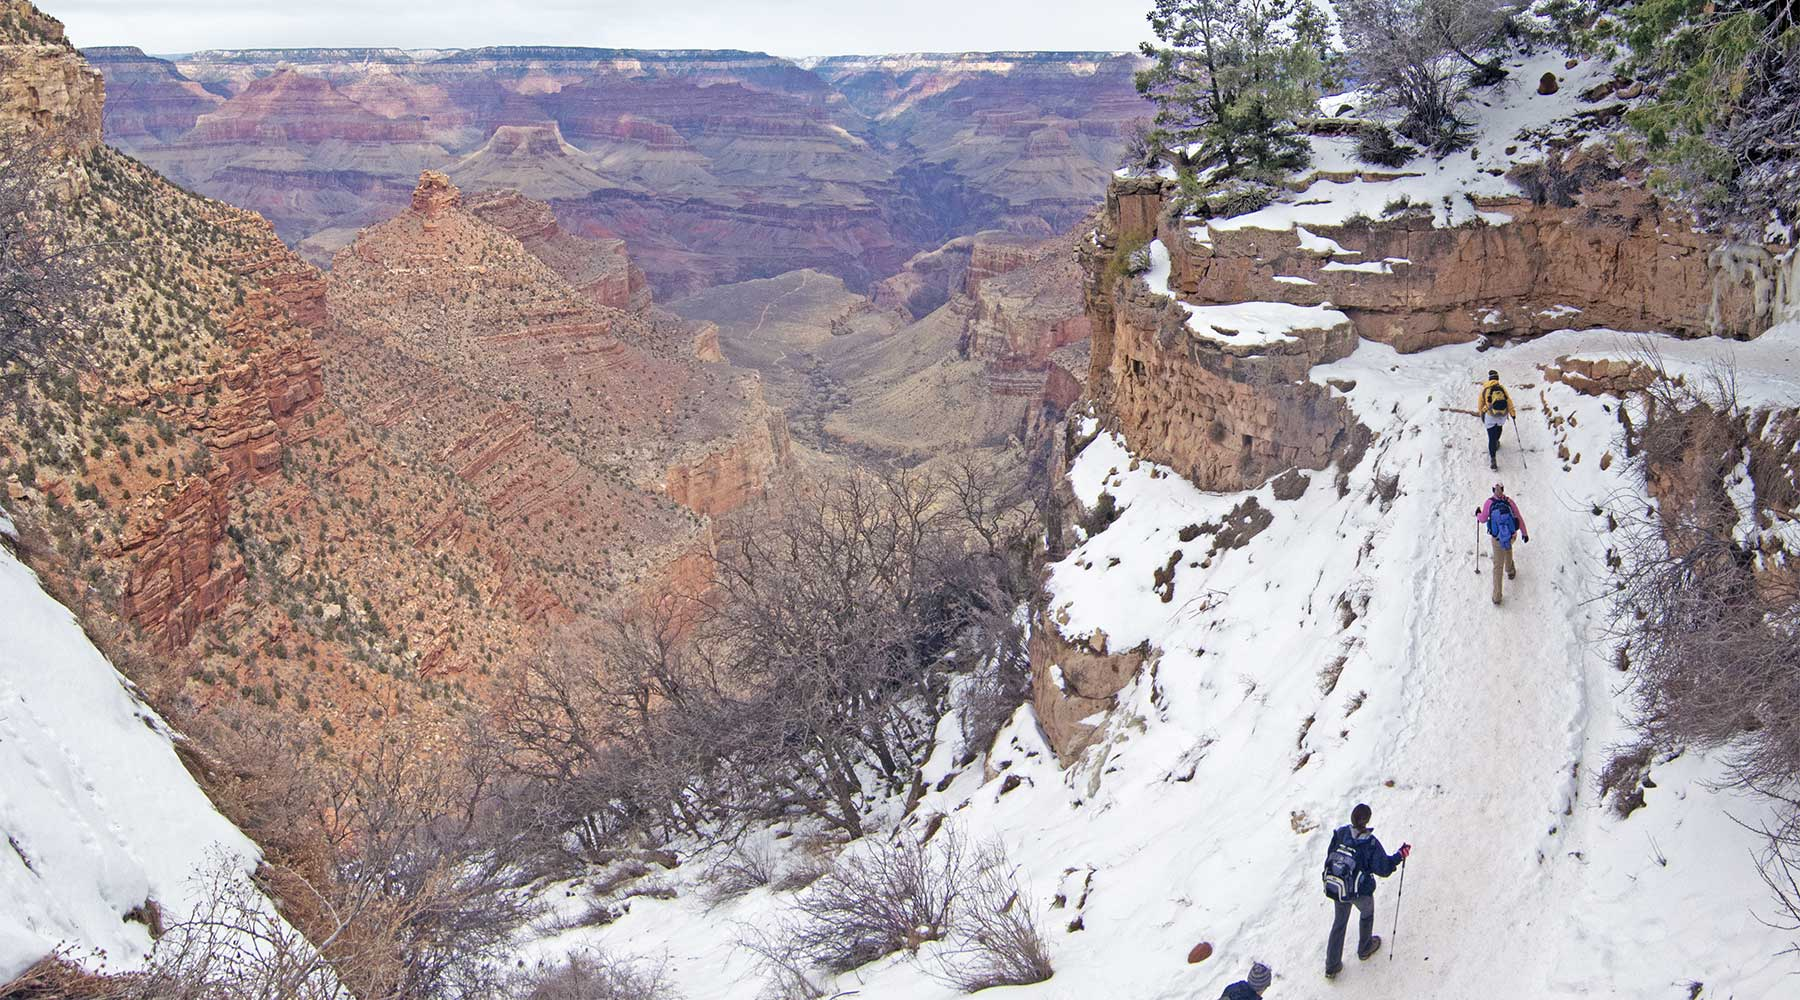 Grand_Canyon_Bright_Angel_Trail,_Winter_Hiking_Grands parcs de l'ouest en hiver, zion, grand canyon, bryce canyon, monument vallée, monument valley, las vegas, chinook voyage, aventure, randonnée